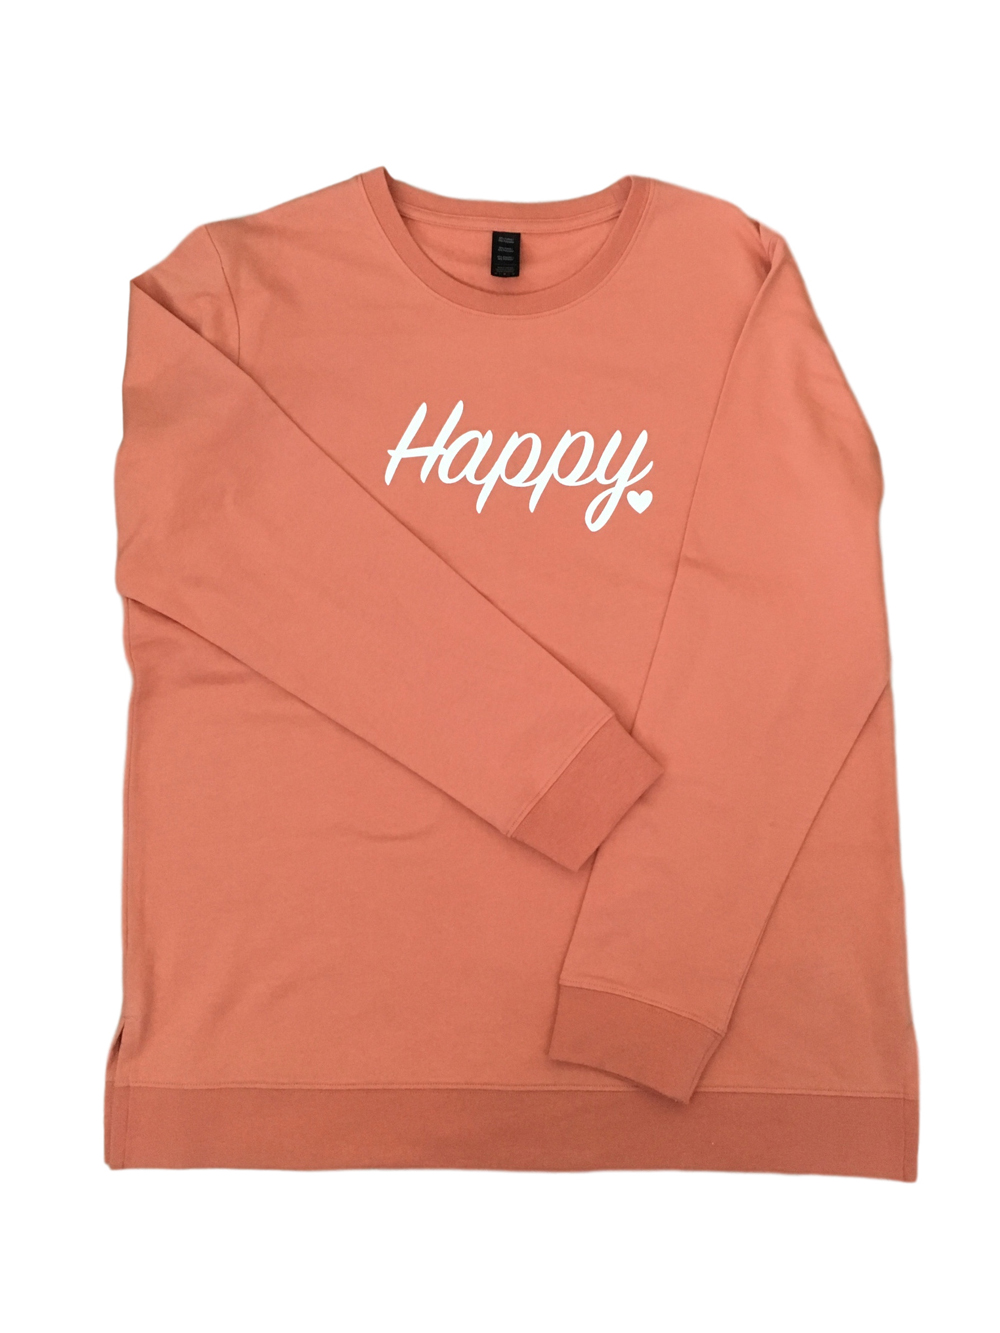 ADULT – Apricot Happy Sweatshirt – Medium